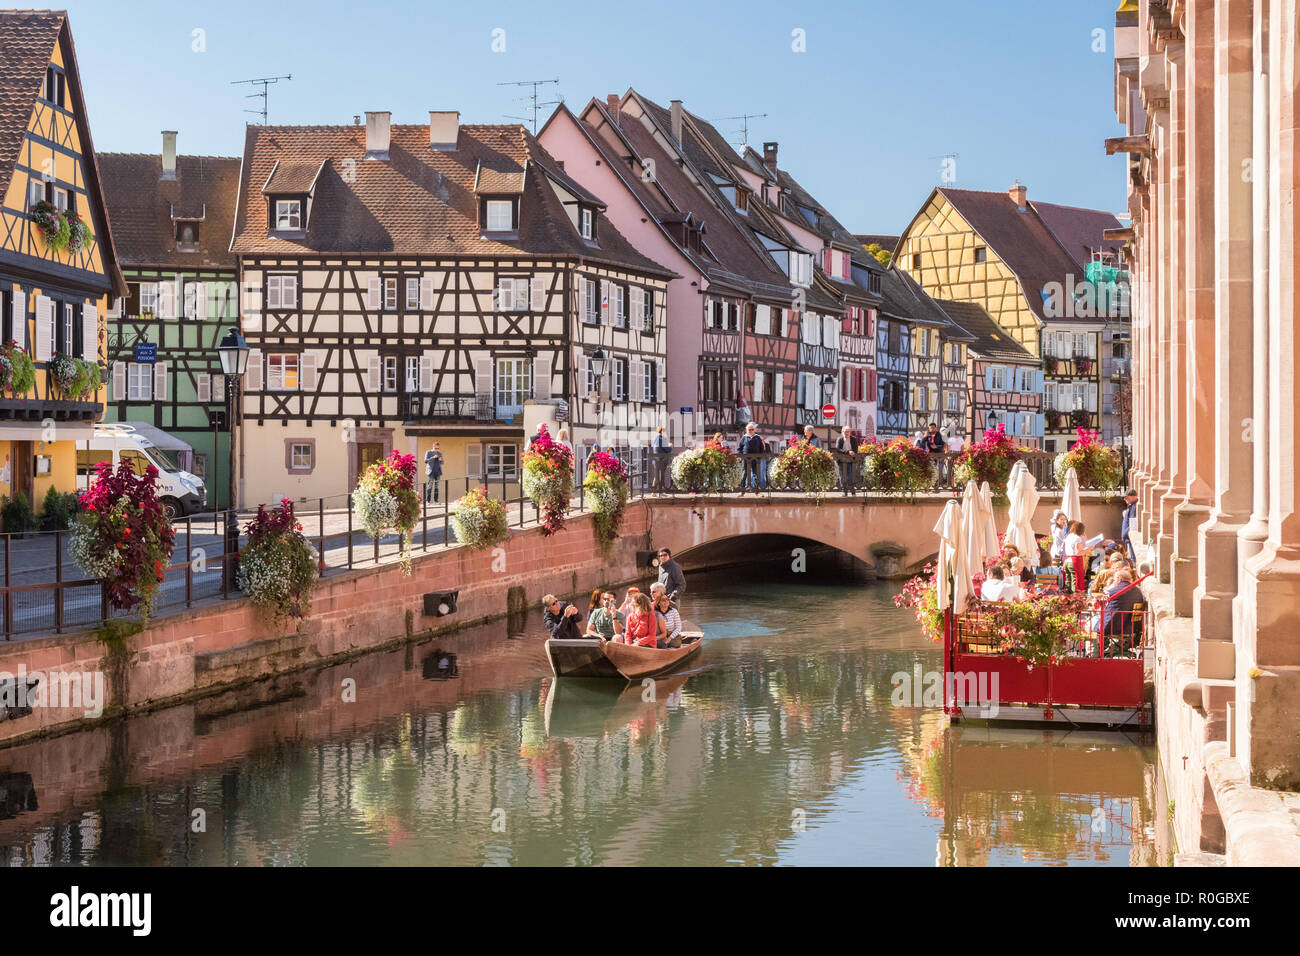 Colmar boat tour passing La Terrace Du Marche restaurant and colourful timber framed houses in the Fishmongers District, Colmar, Alsace, France - Stock Image